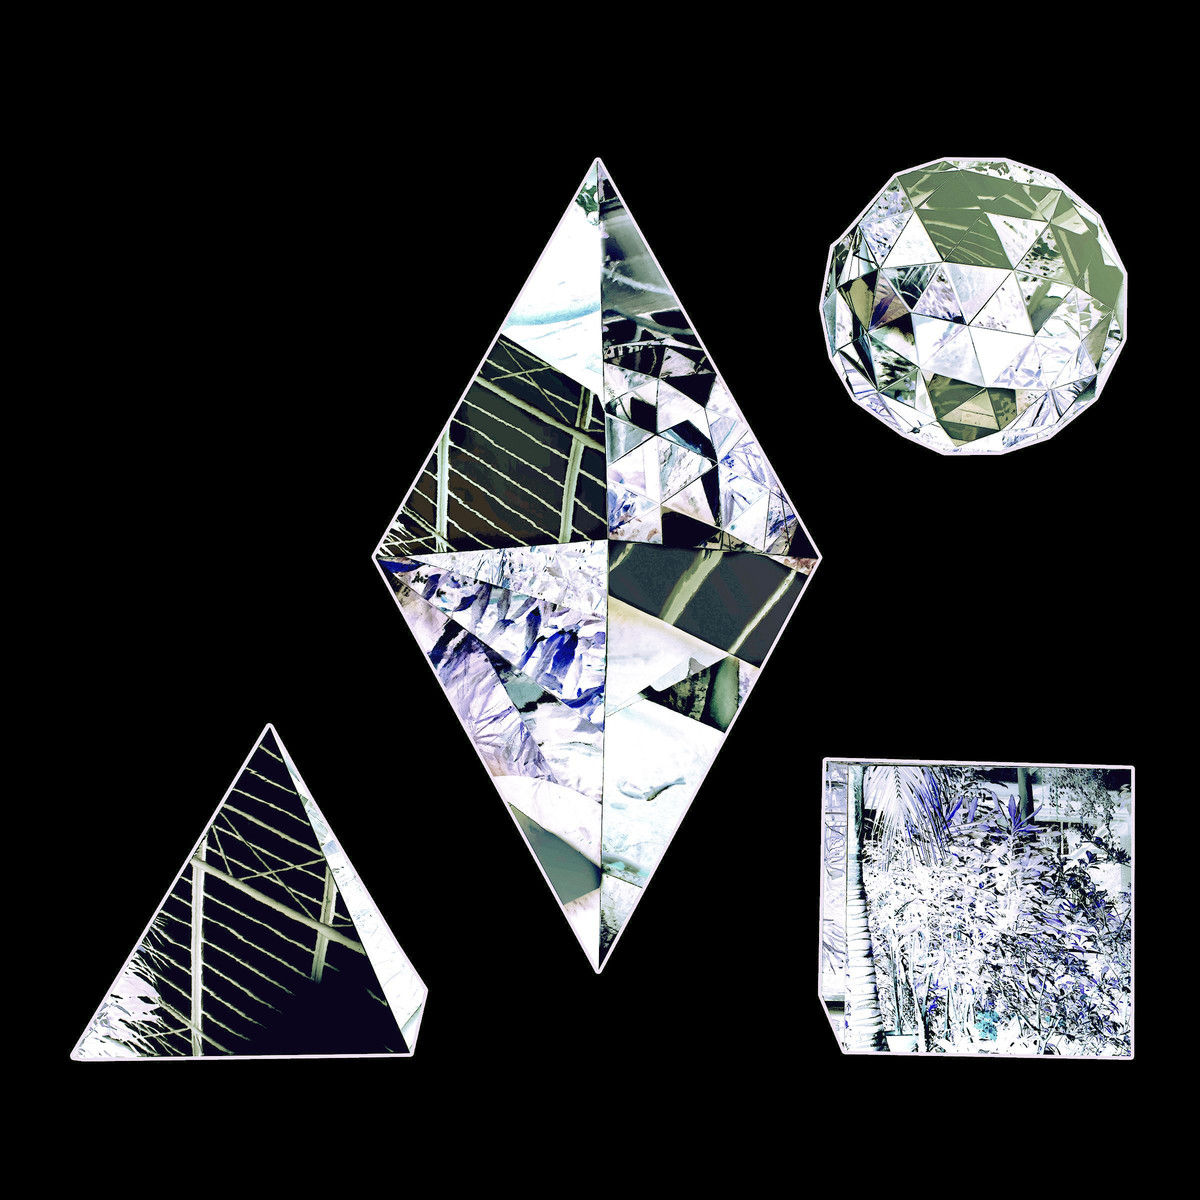 clean bandit, real love single, real love 2014, jess glynne, clean bandit jess glynne